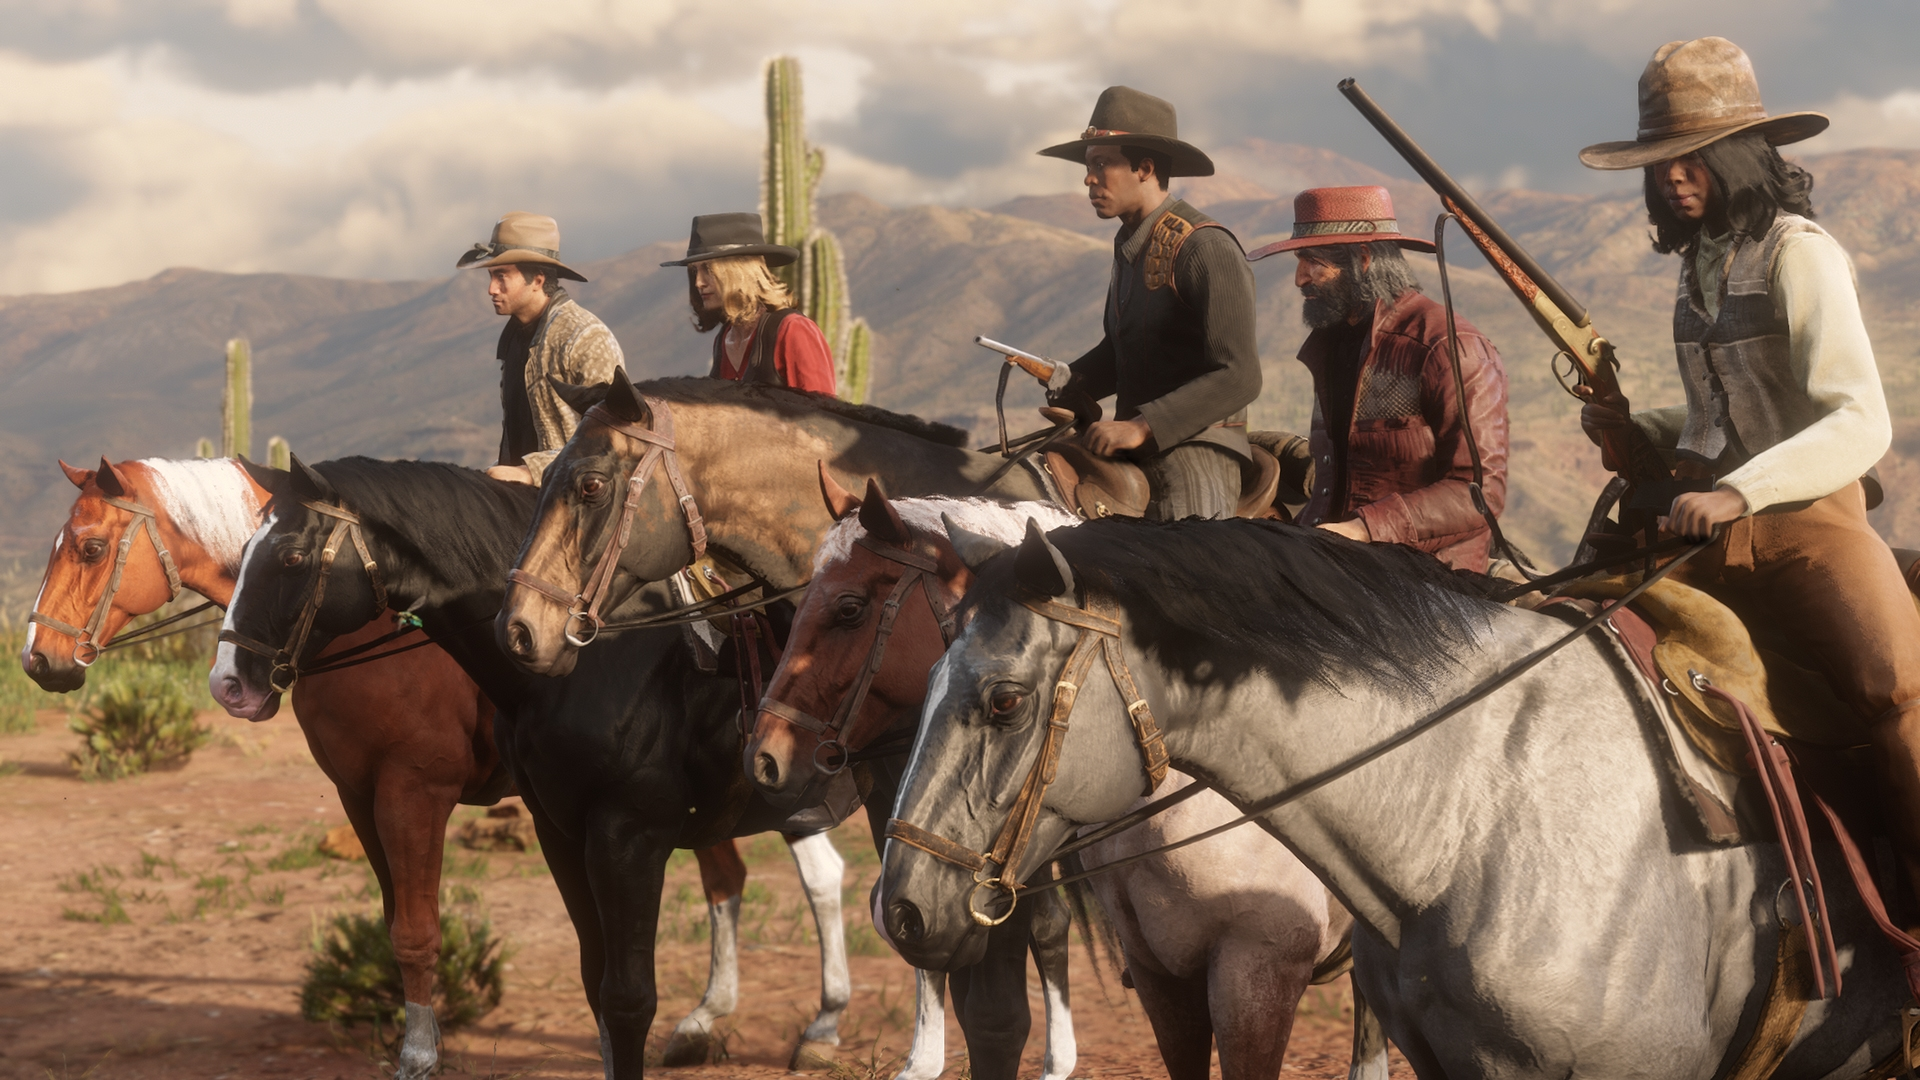 Red Dead Online Update coming February 26: Player Visibility, Bounties, Challenges and more